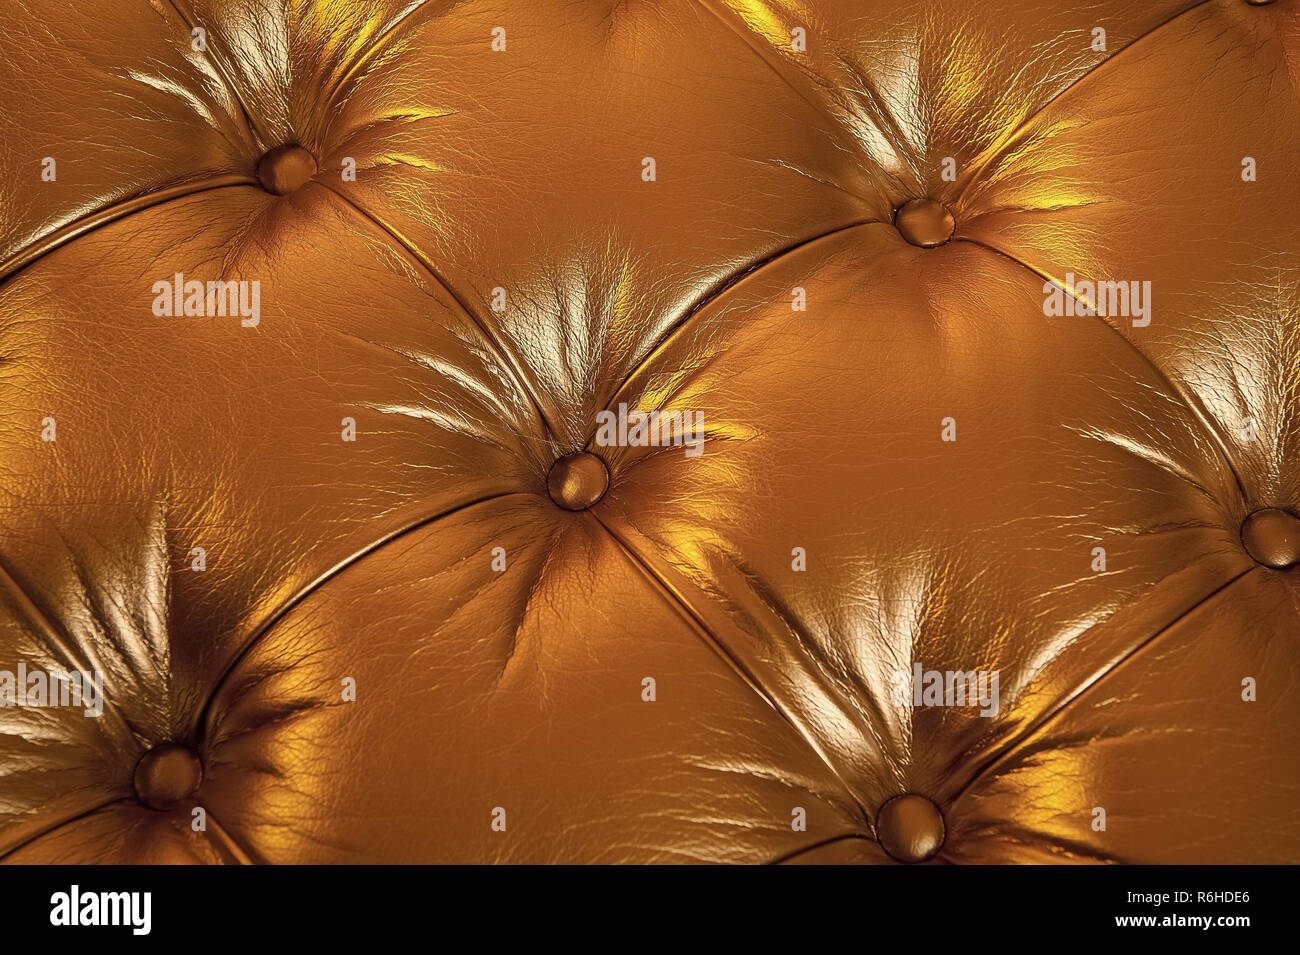 Leather texture padded with buttons on golden background. Furniture, upholstery, decoration, design concept. - Stock Image